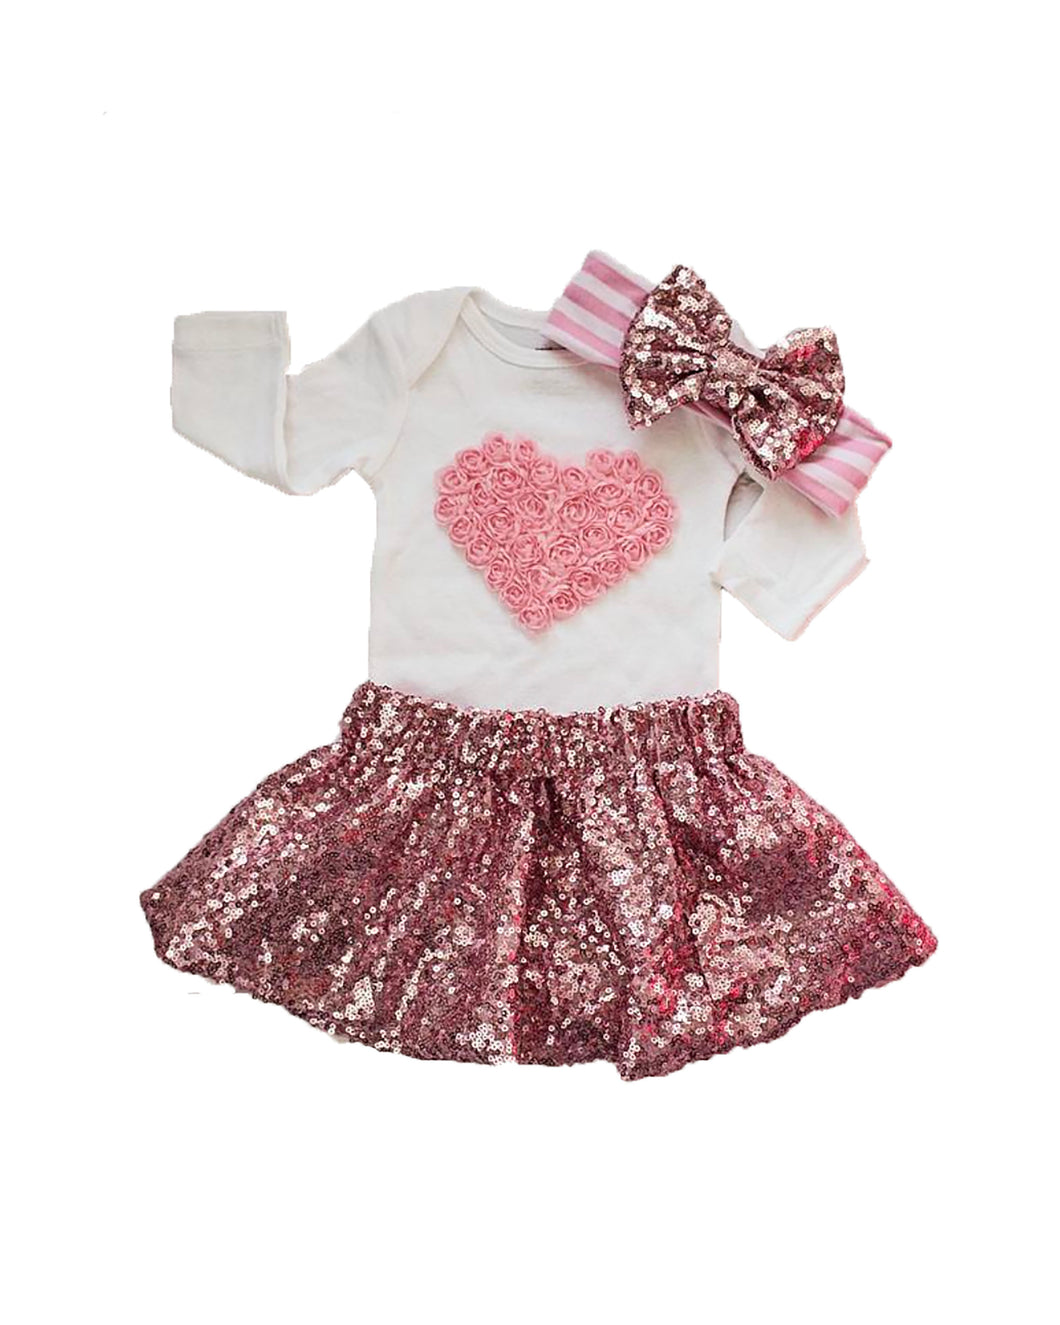 Valentines Day Outfit for Newborn-Infant-Toddlers. Pink skirt, heart bodysuit and pink headband